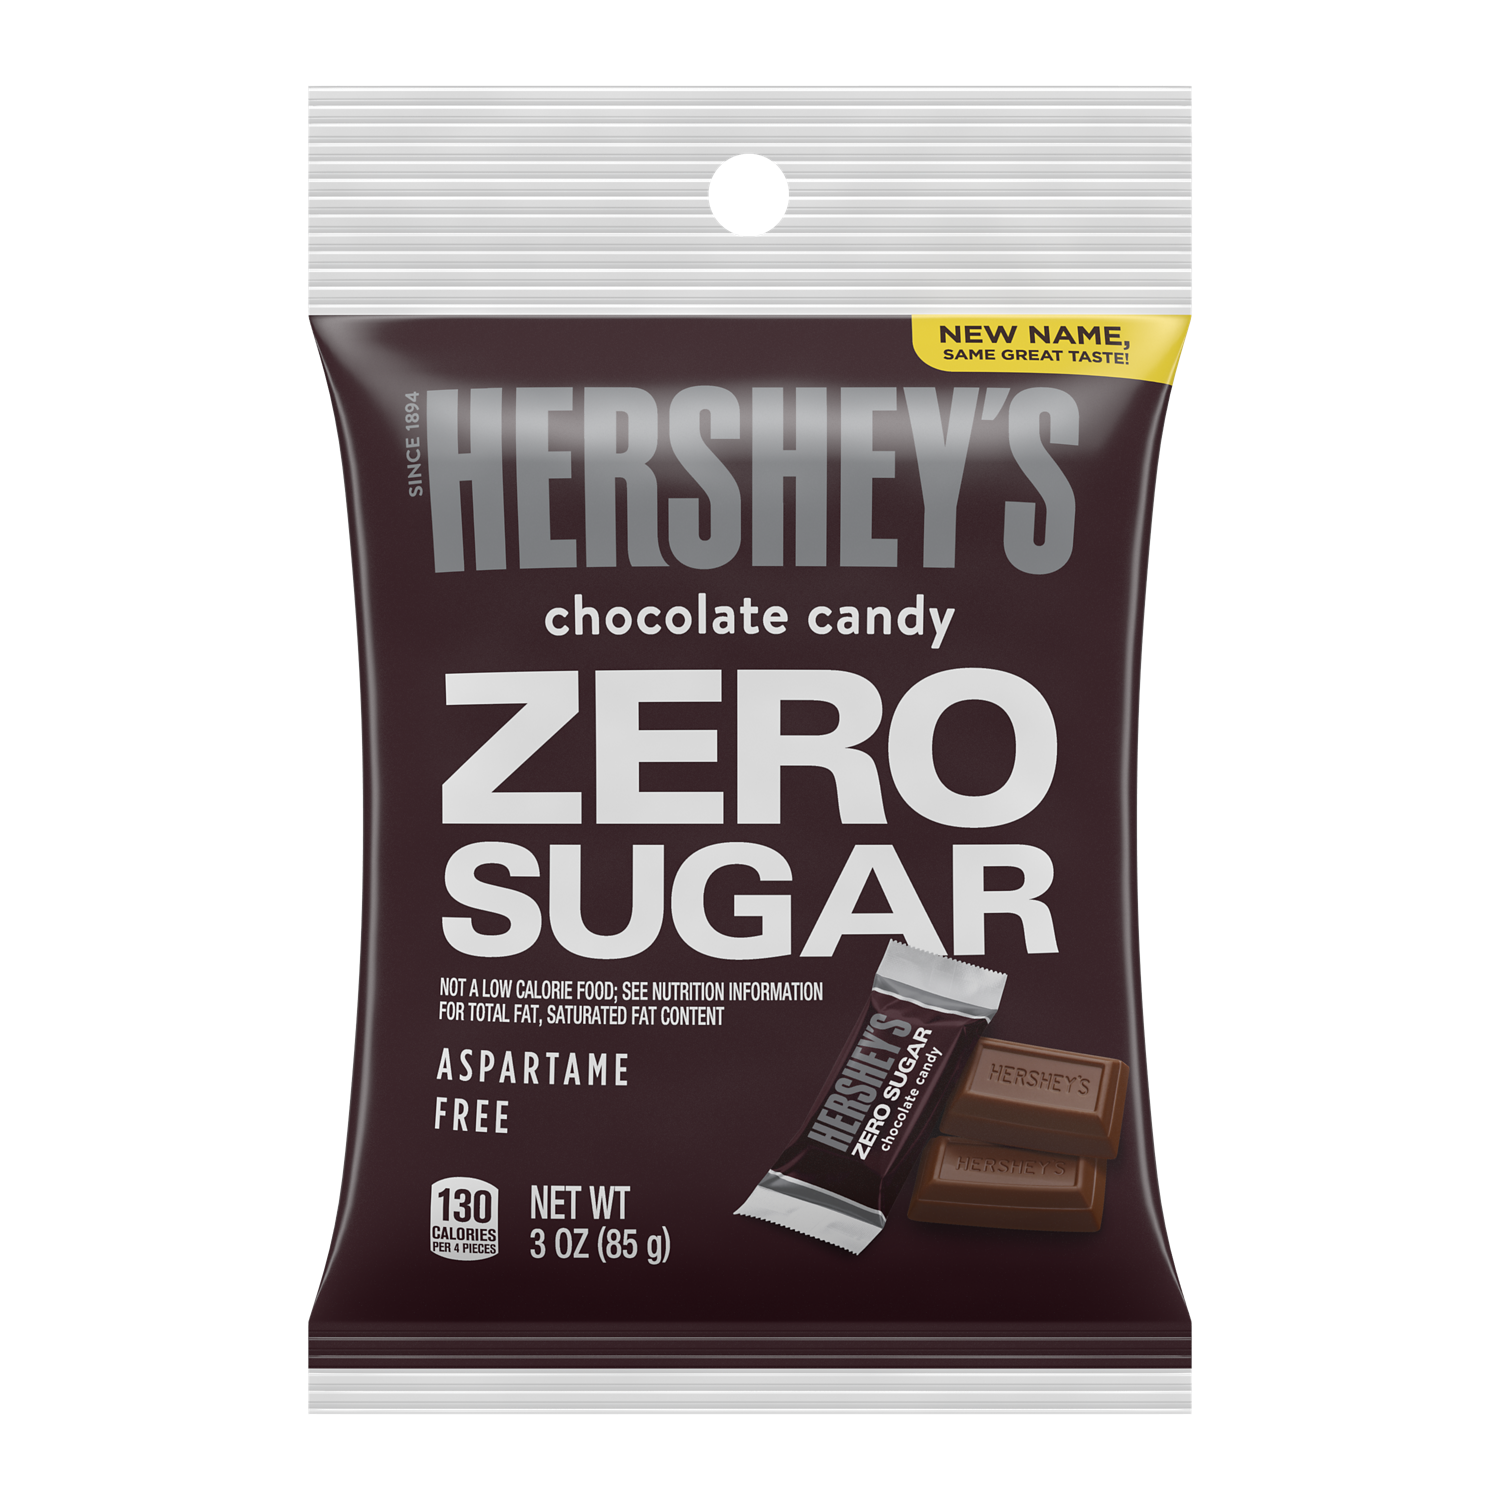 HERSHEY'S Zero Sugar Chocolate Candy Bars, 3 oz bag - Front of Package